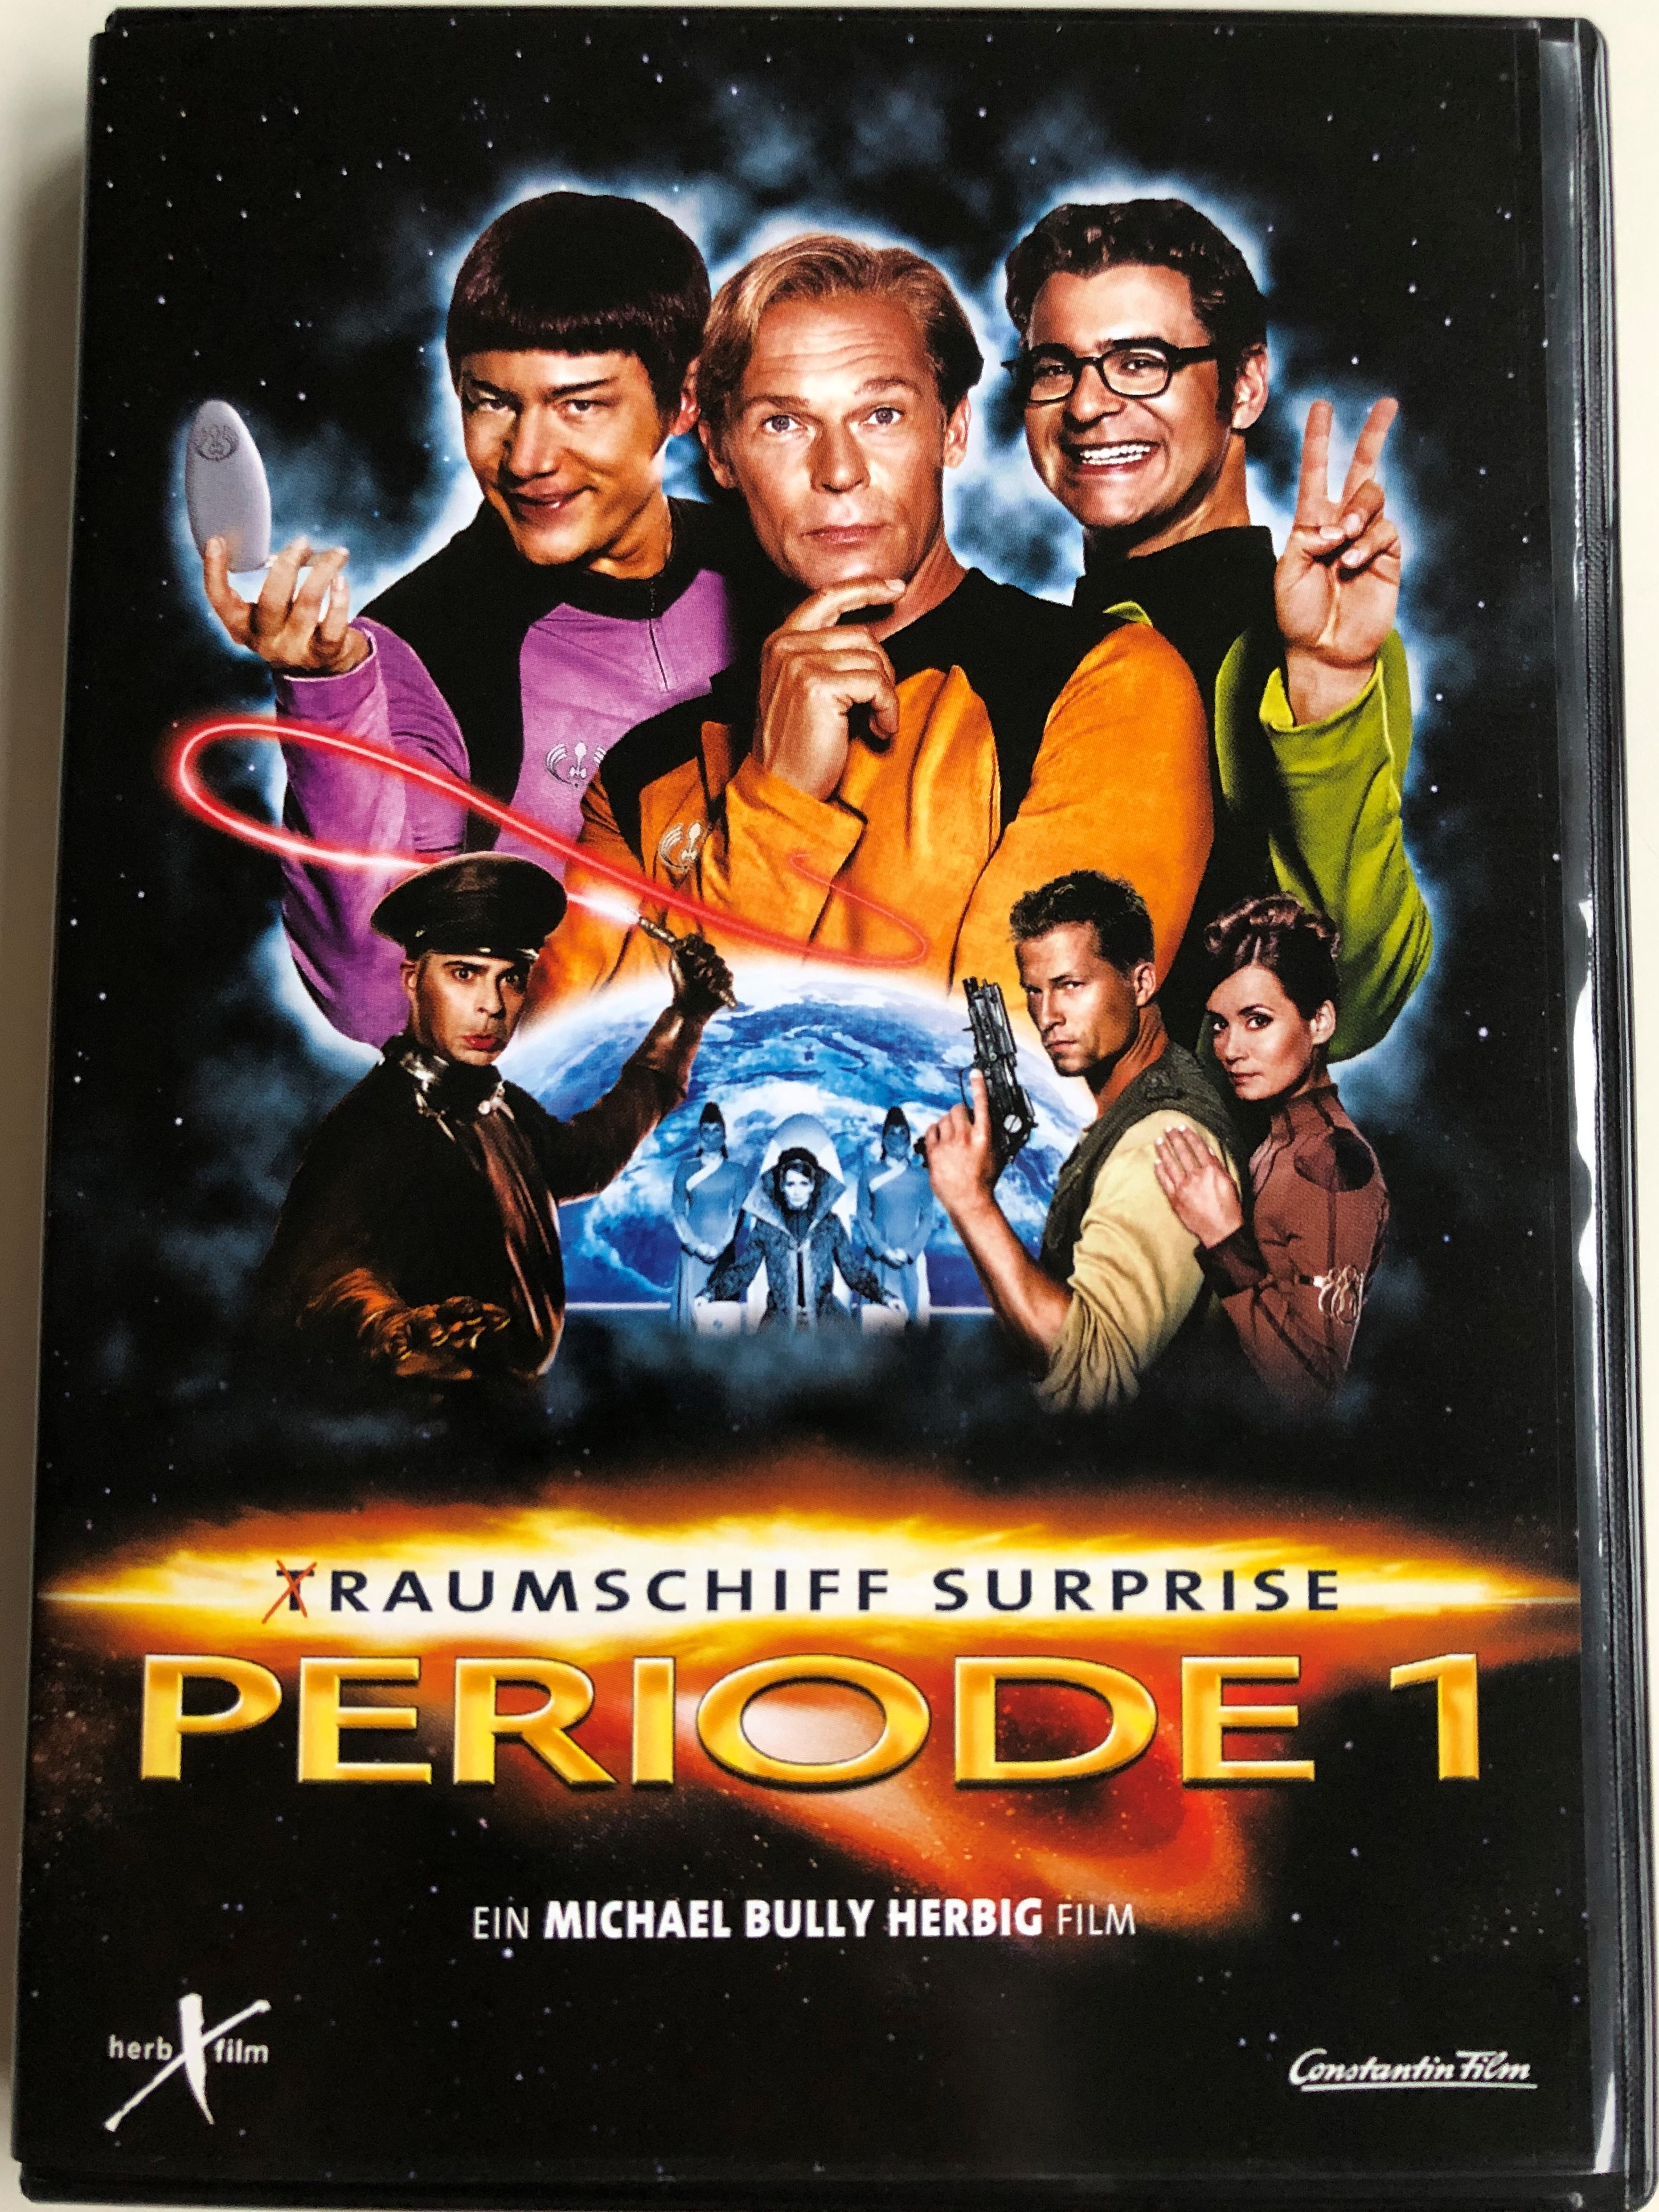 t-raumschiff-surprise-periode-1-dvd-2004-directed-by-michael-bully-herbig-1.jpg